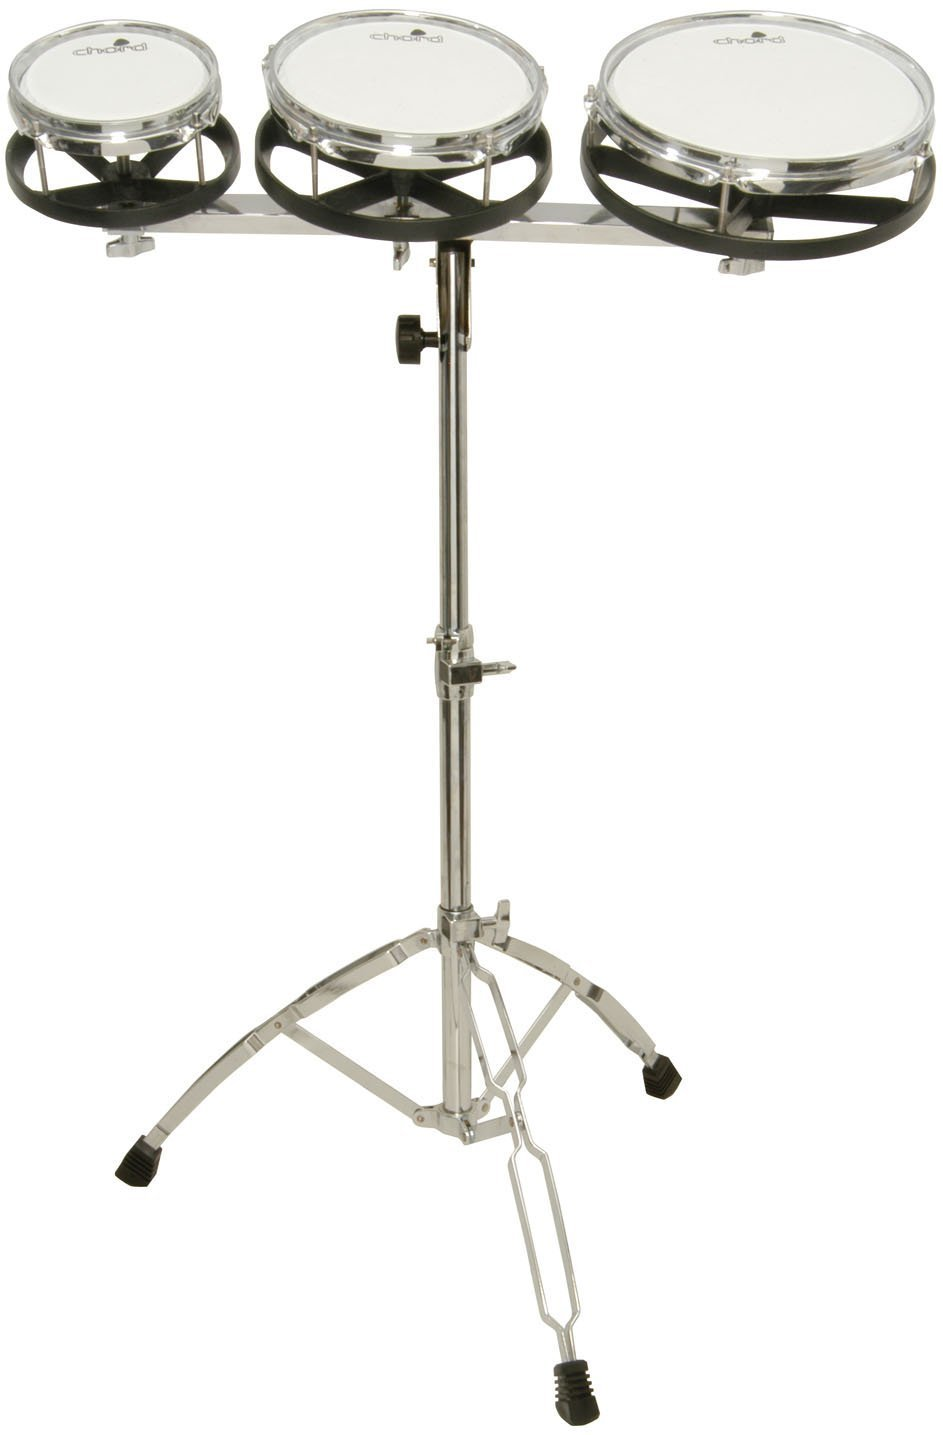 Z9V49 MUSICAL INSTRUMENT SET OF 3 ROTOTOMS WITH FOLDING TRIPOD STAND